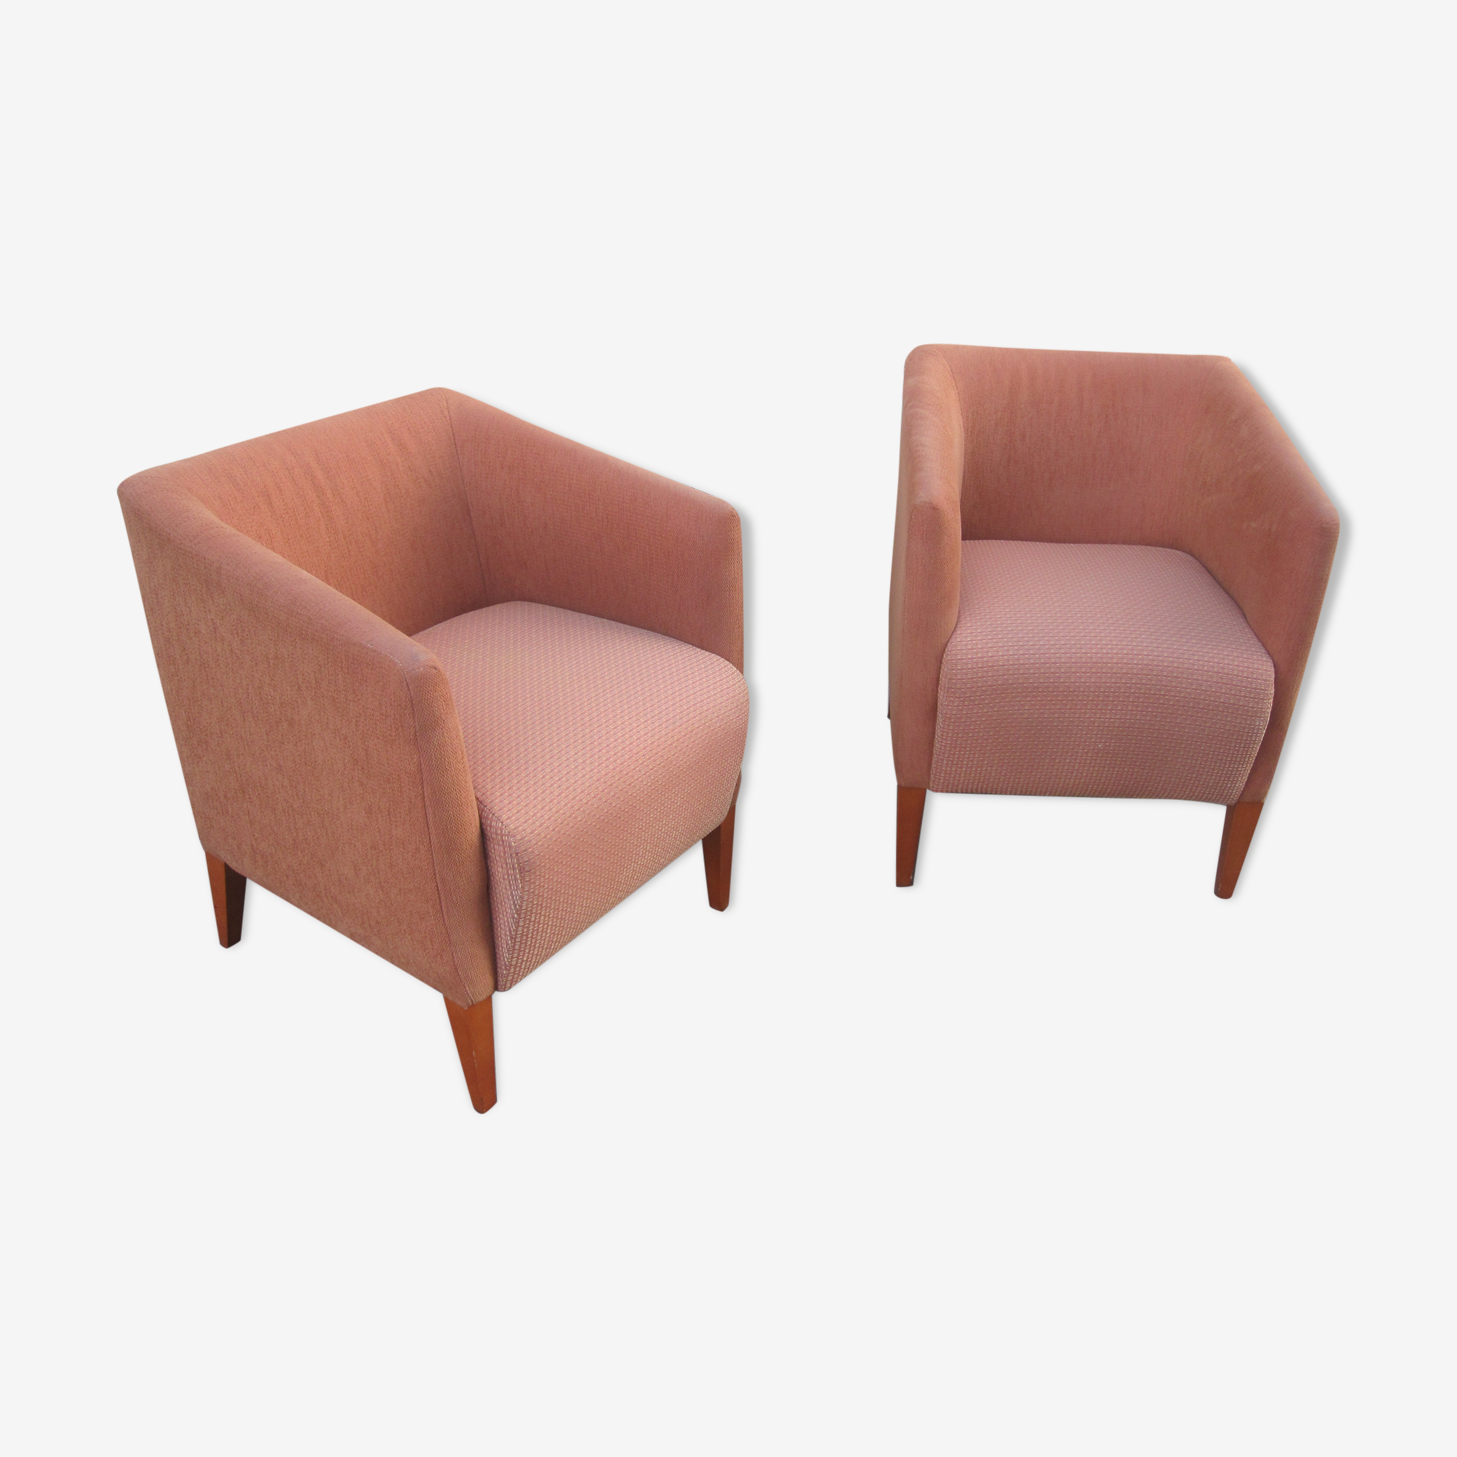 Pair of club style armchairs